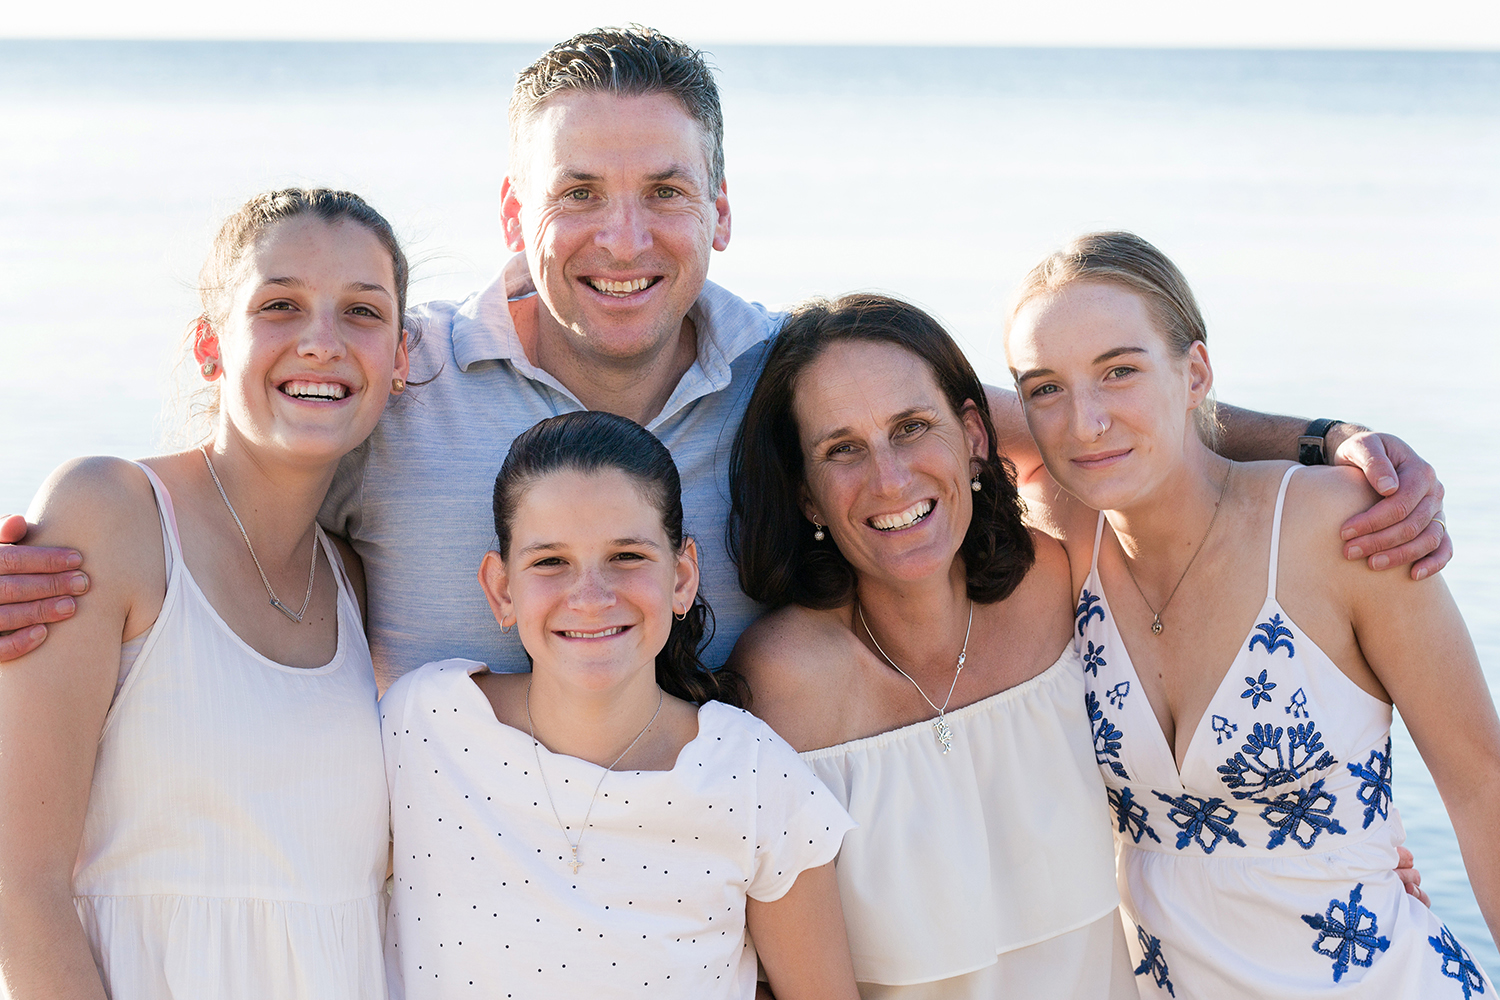 family-beach-photo-portraits-042